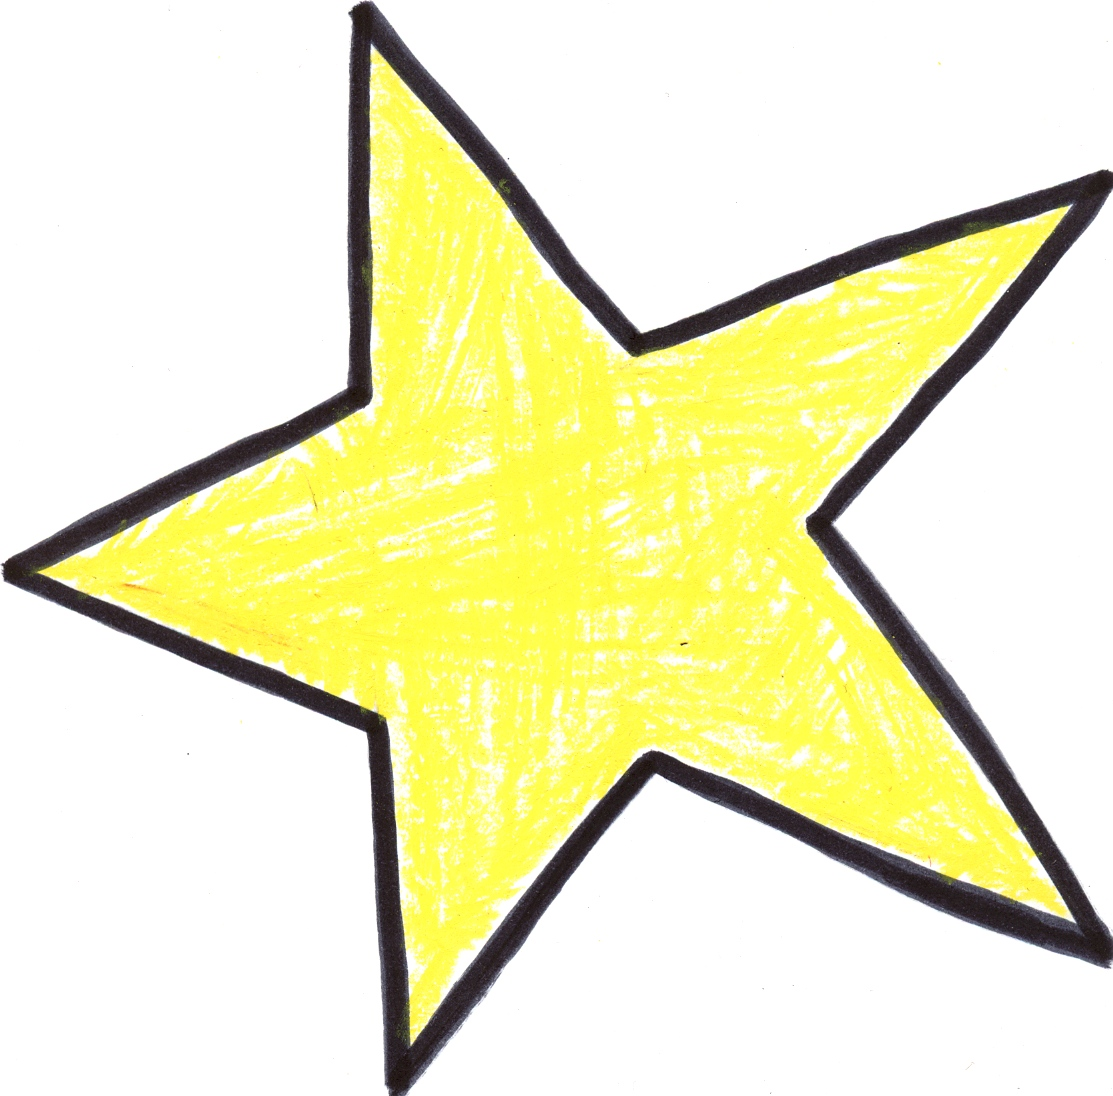 Star clipart #3, Download drawings